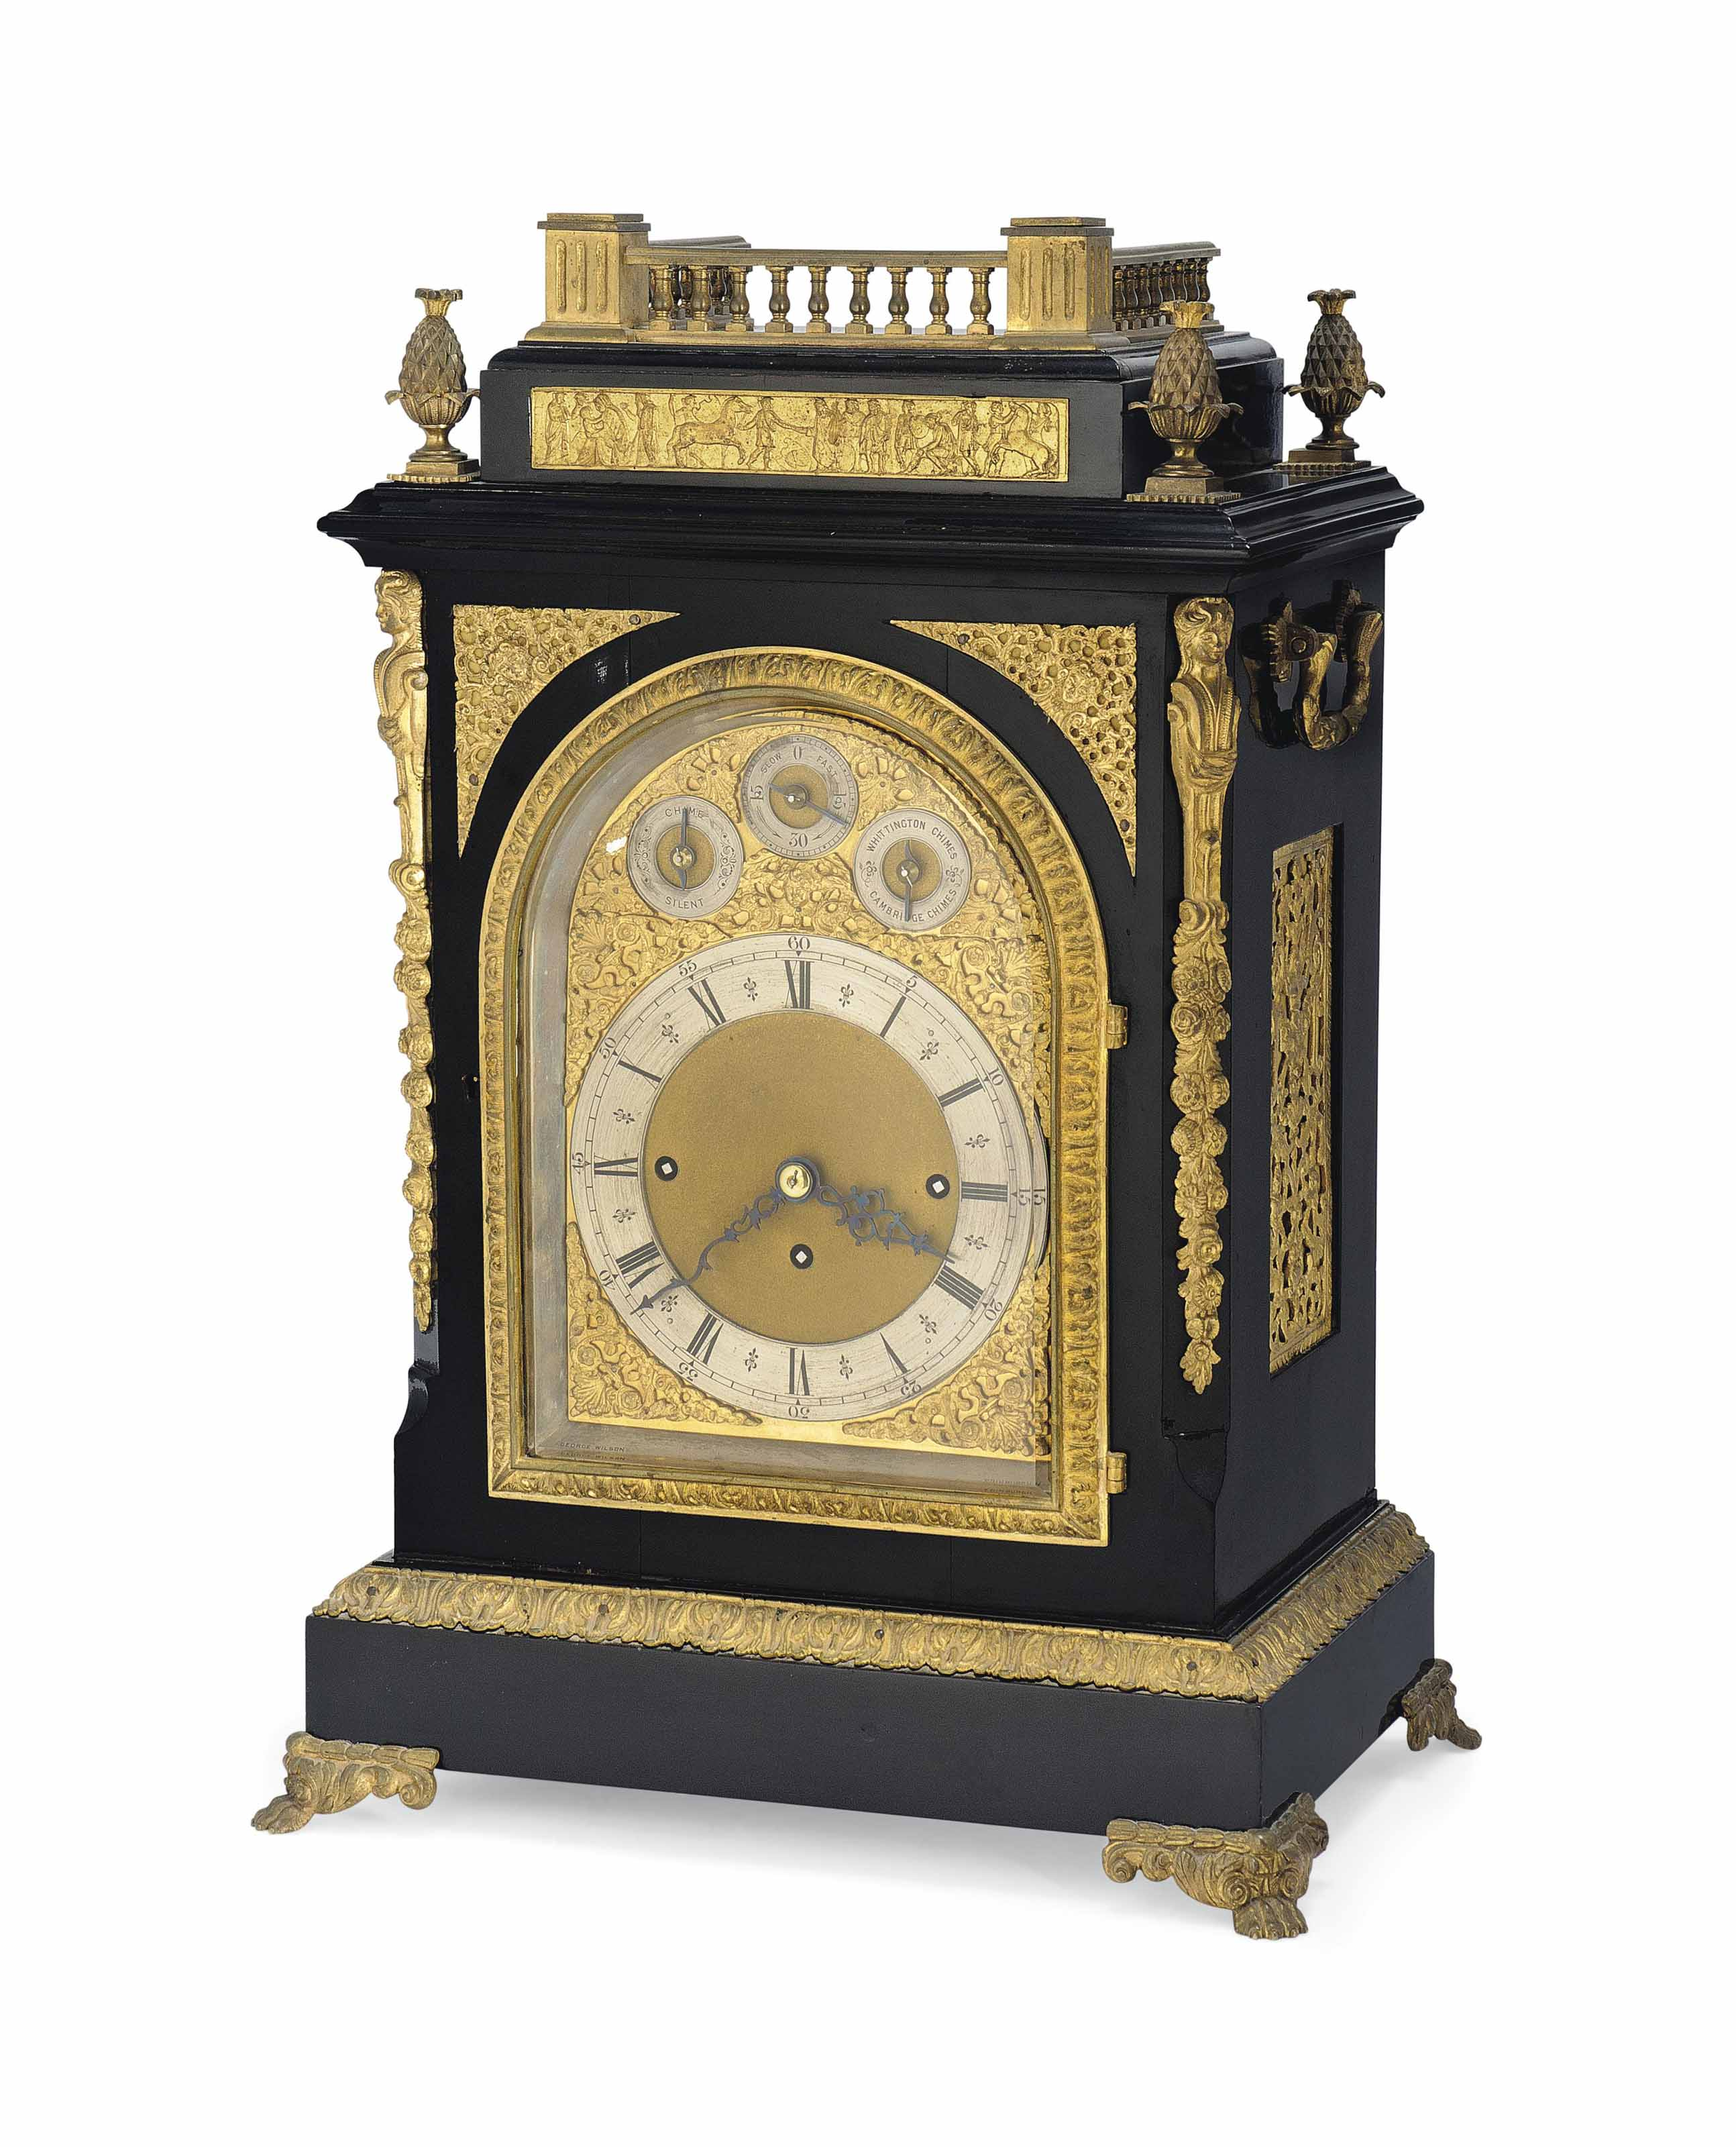 A SCOTTISH LATE VICTORIAN GILT-BRONZE MOUNTED EBONISED QUARTER-CHIMING DIRECTOR'S CLOCK